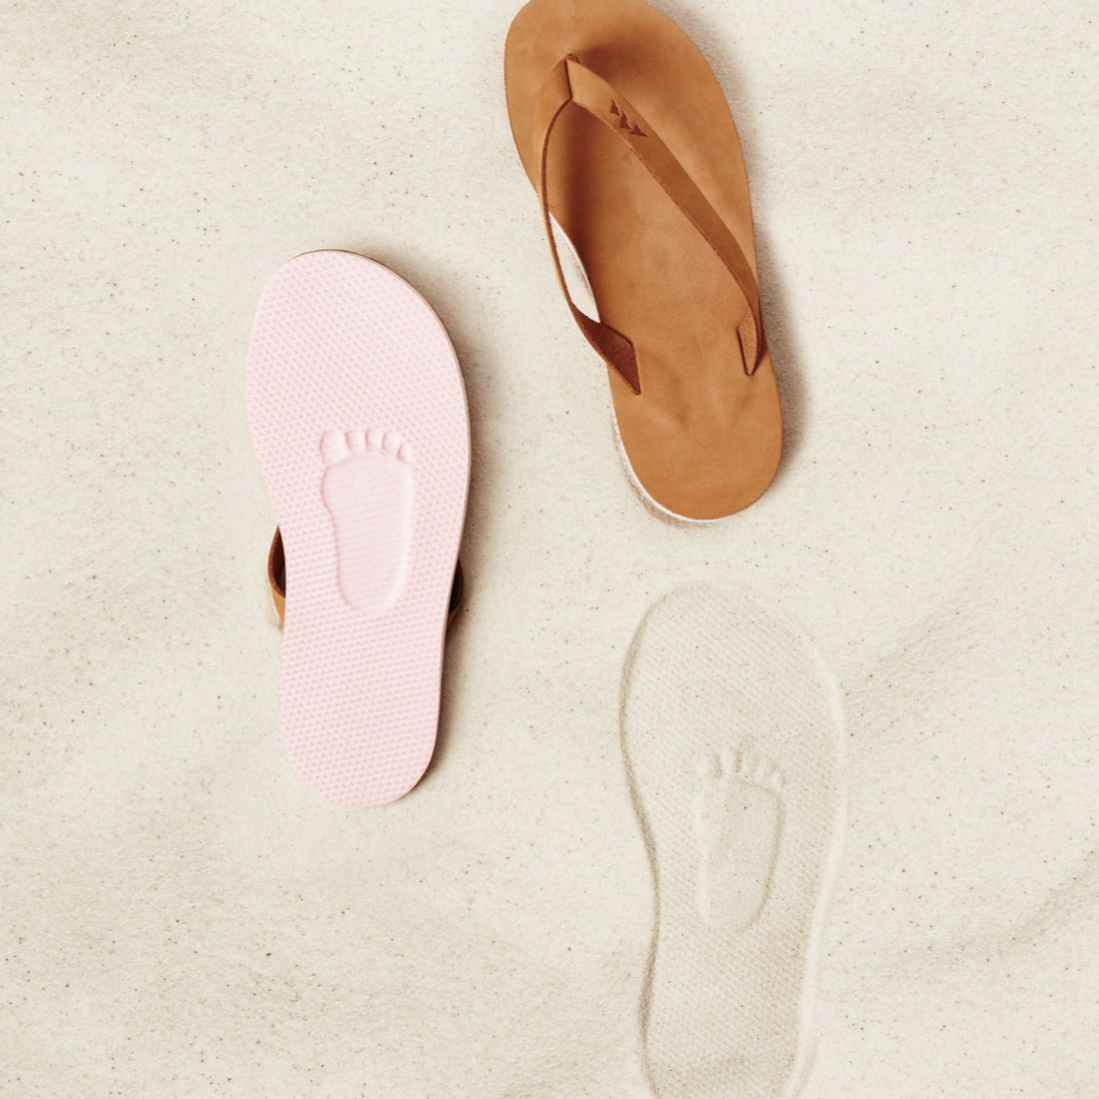 evian-bebes-surfers-tongs-plage-sable-pied-bebe-betc